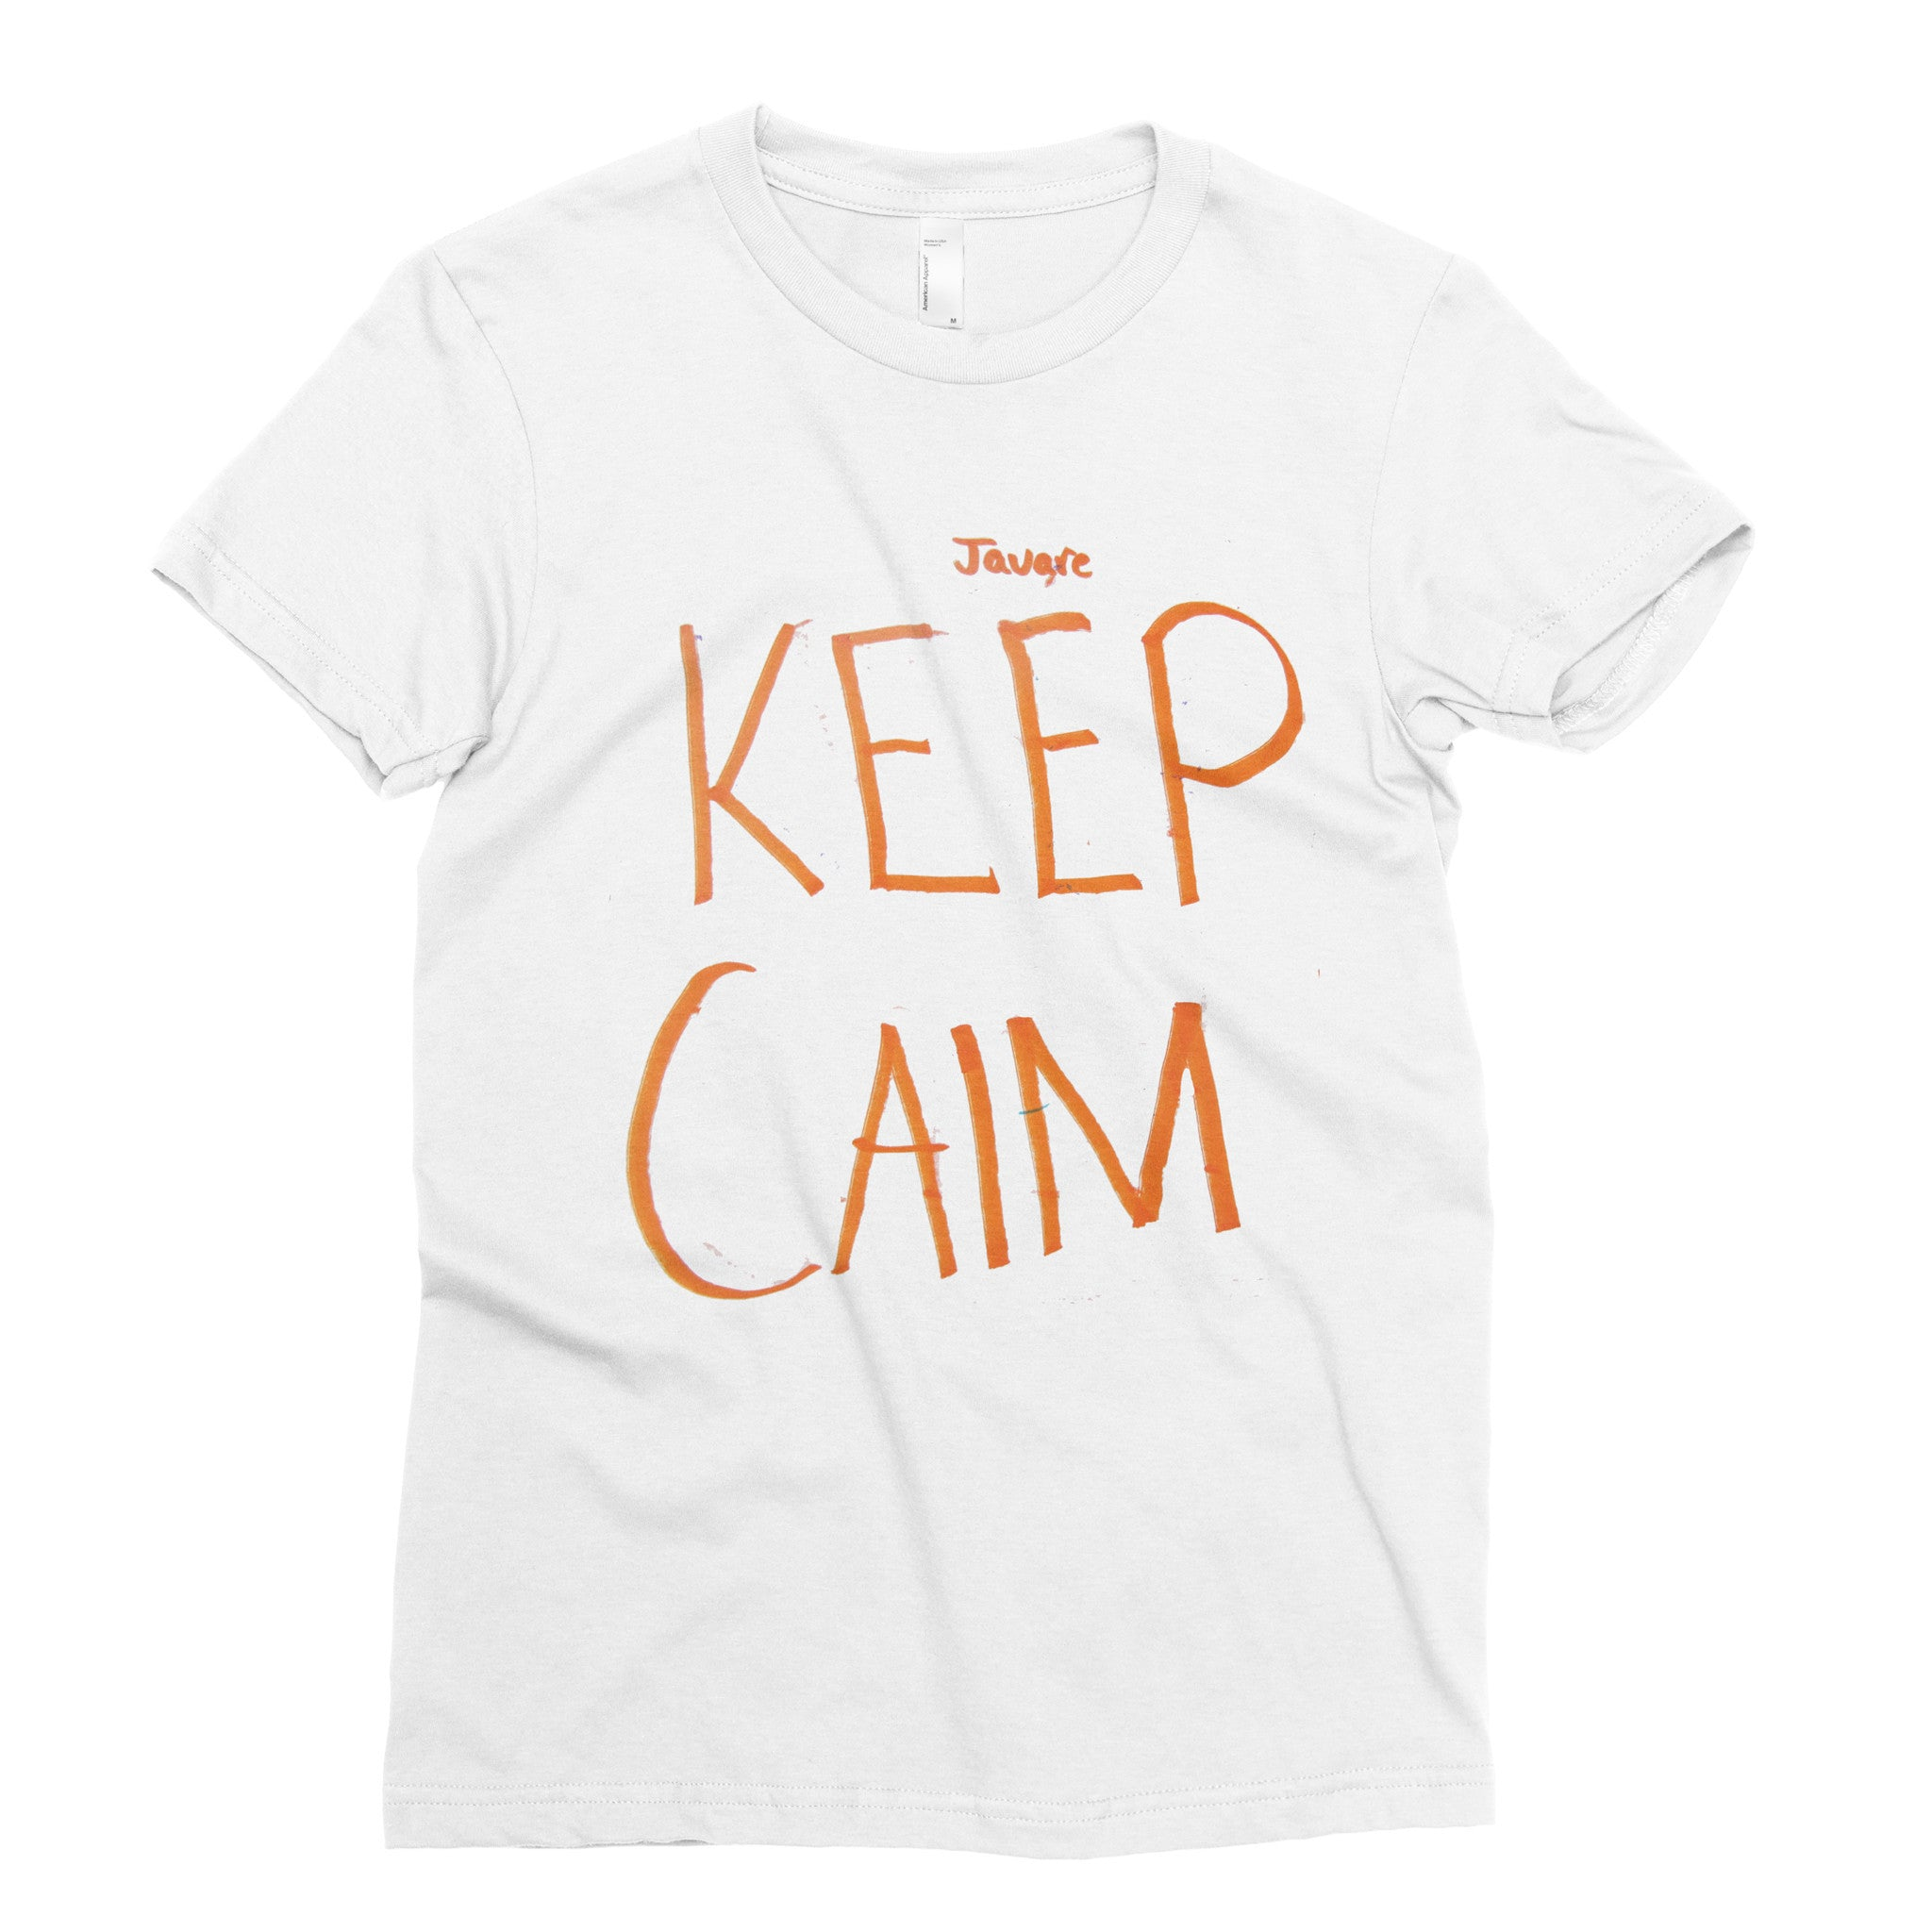 Keep Calm - Adult T-shirt - Rightside Shirts